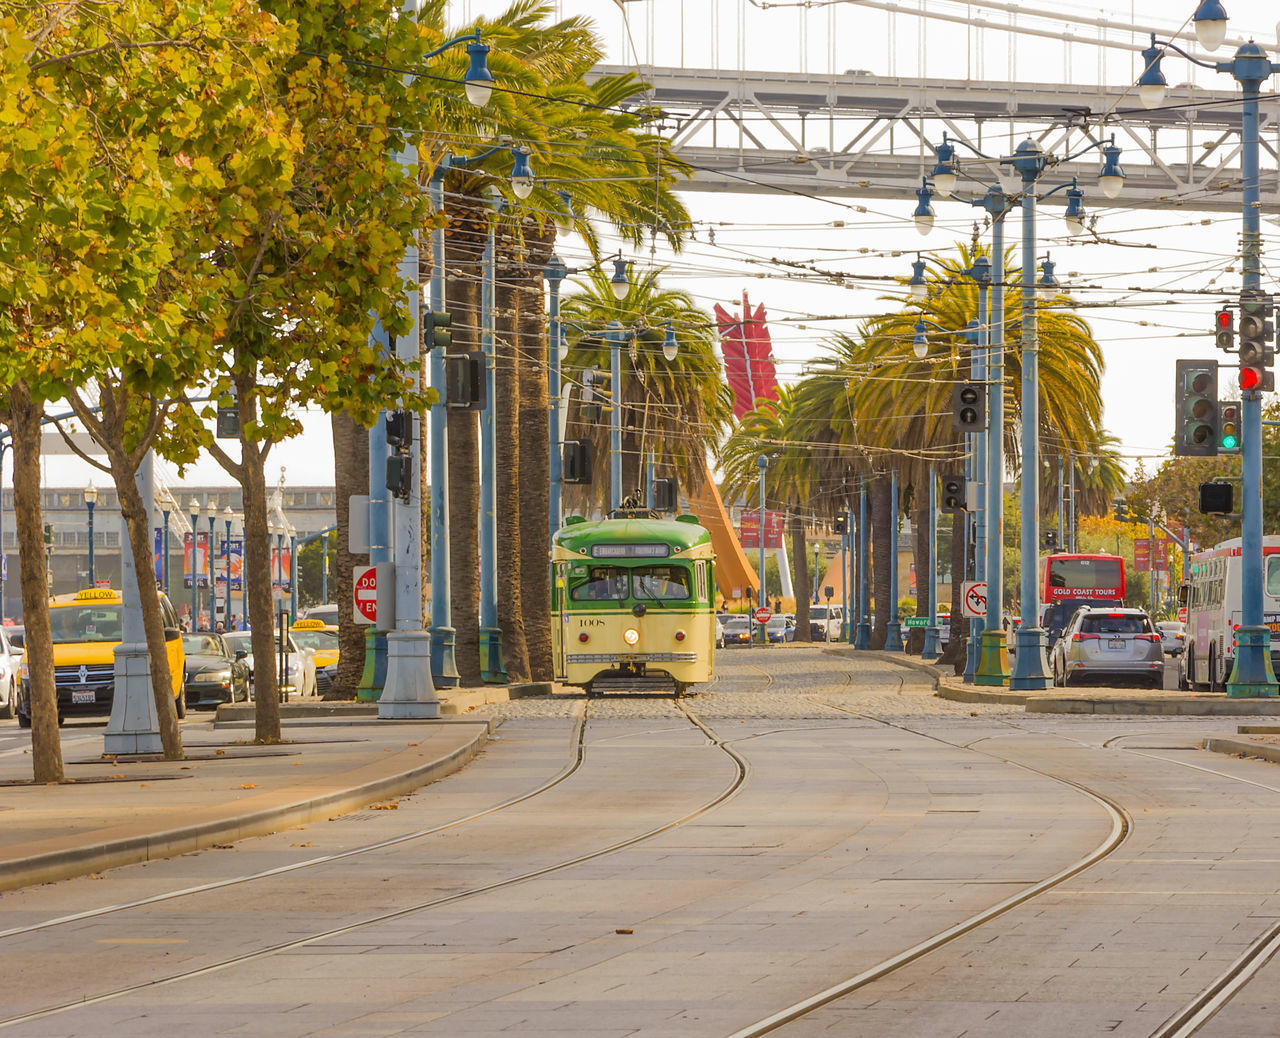 Tram in San Francisco waiting to move Architecture Business Finance And Industry City Day Greenhouse Industrial Building  Industry Long Angle View Moving No People Outdoors Tourism Tram Transportation Tree